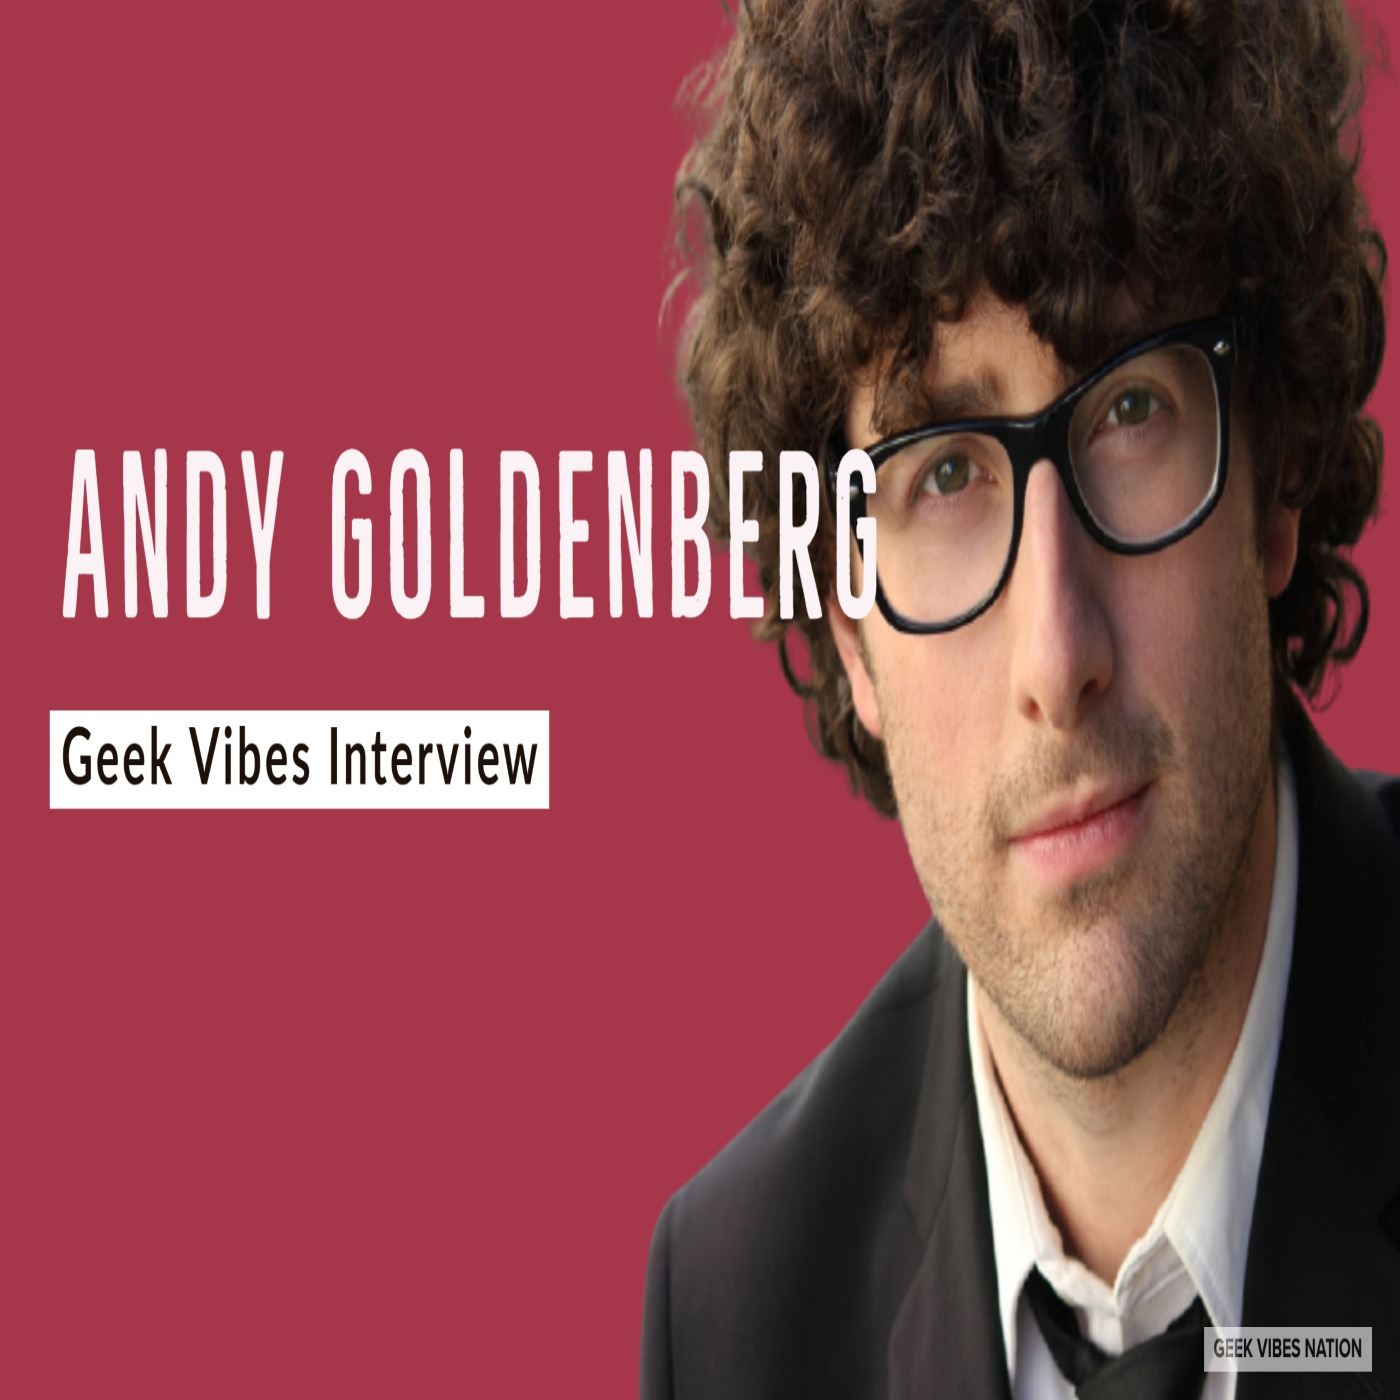 Geek Vibes Interview with Andy Goldenberg